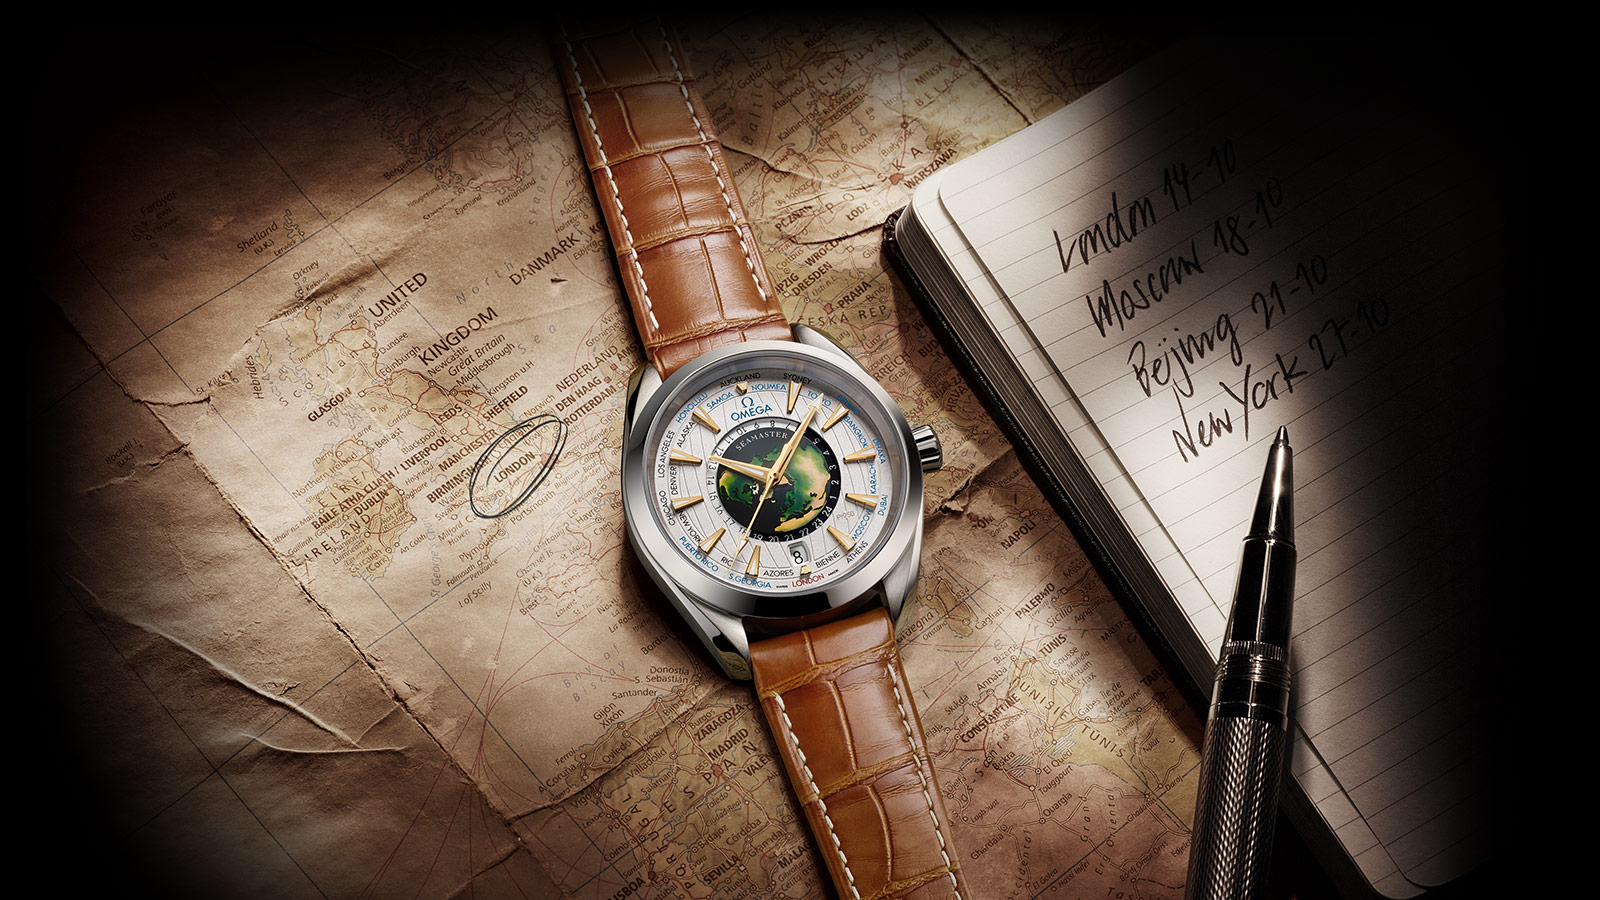 Contextual view of the Worldtimer limited edition watch placed on a map